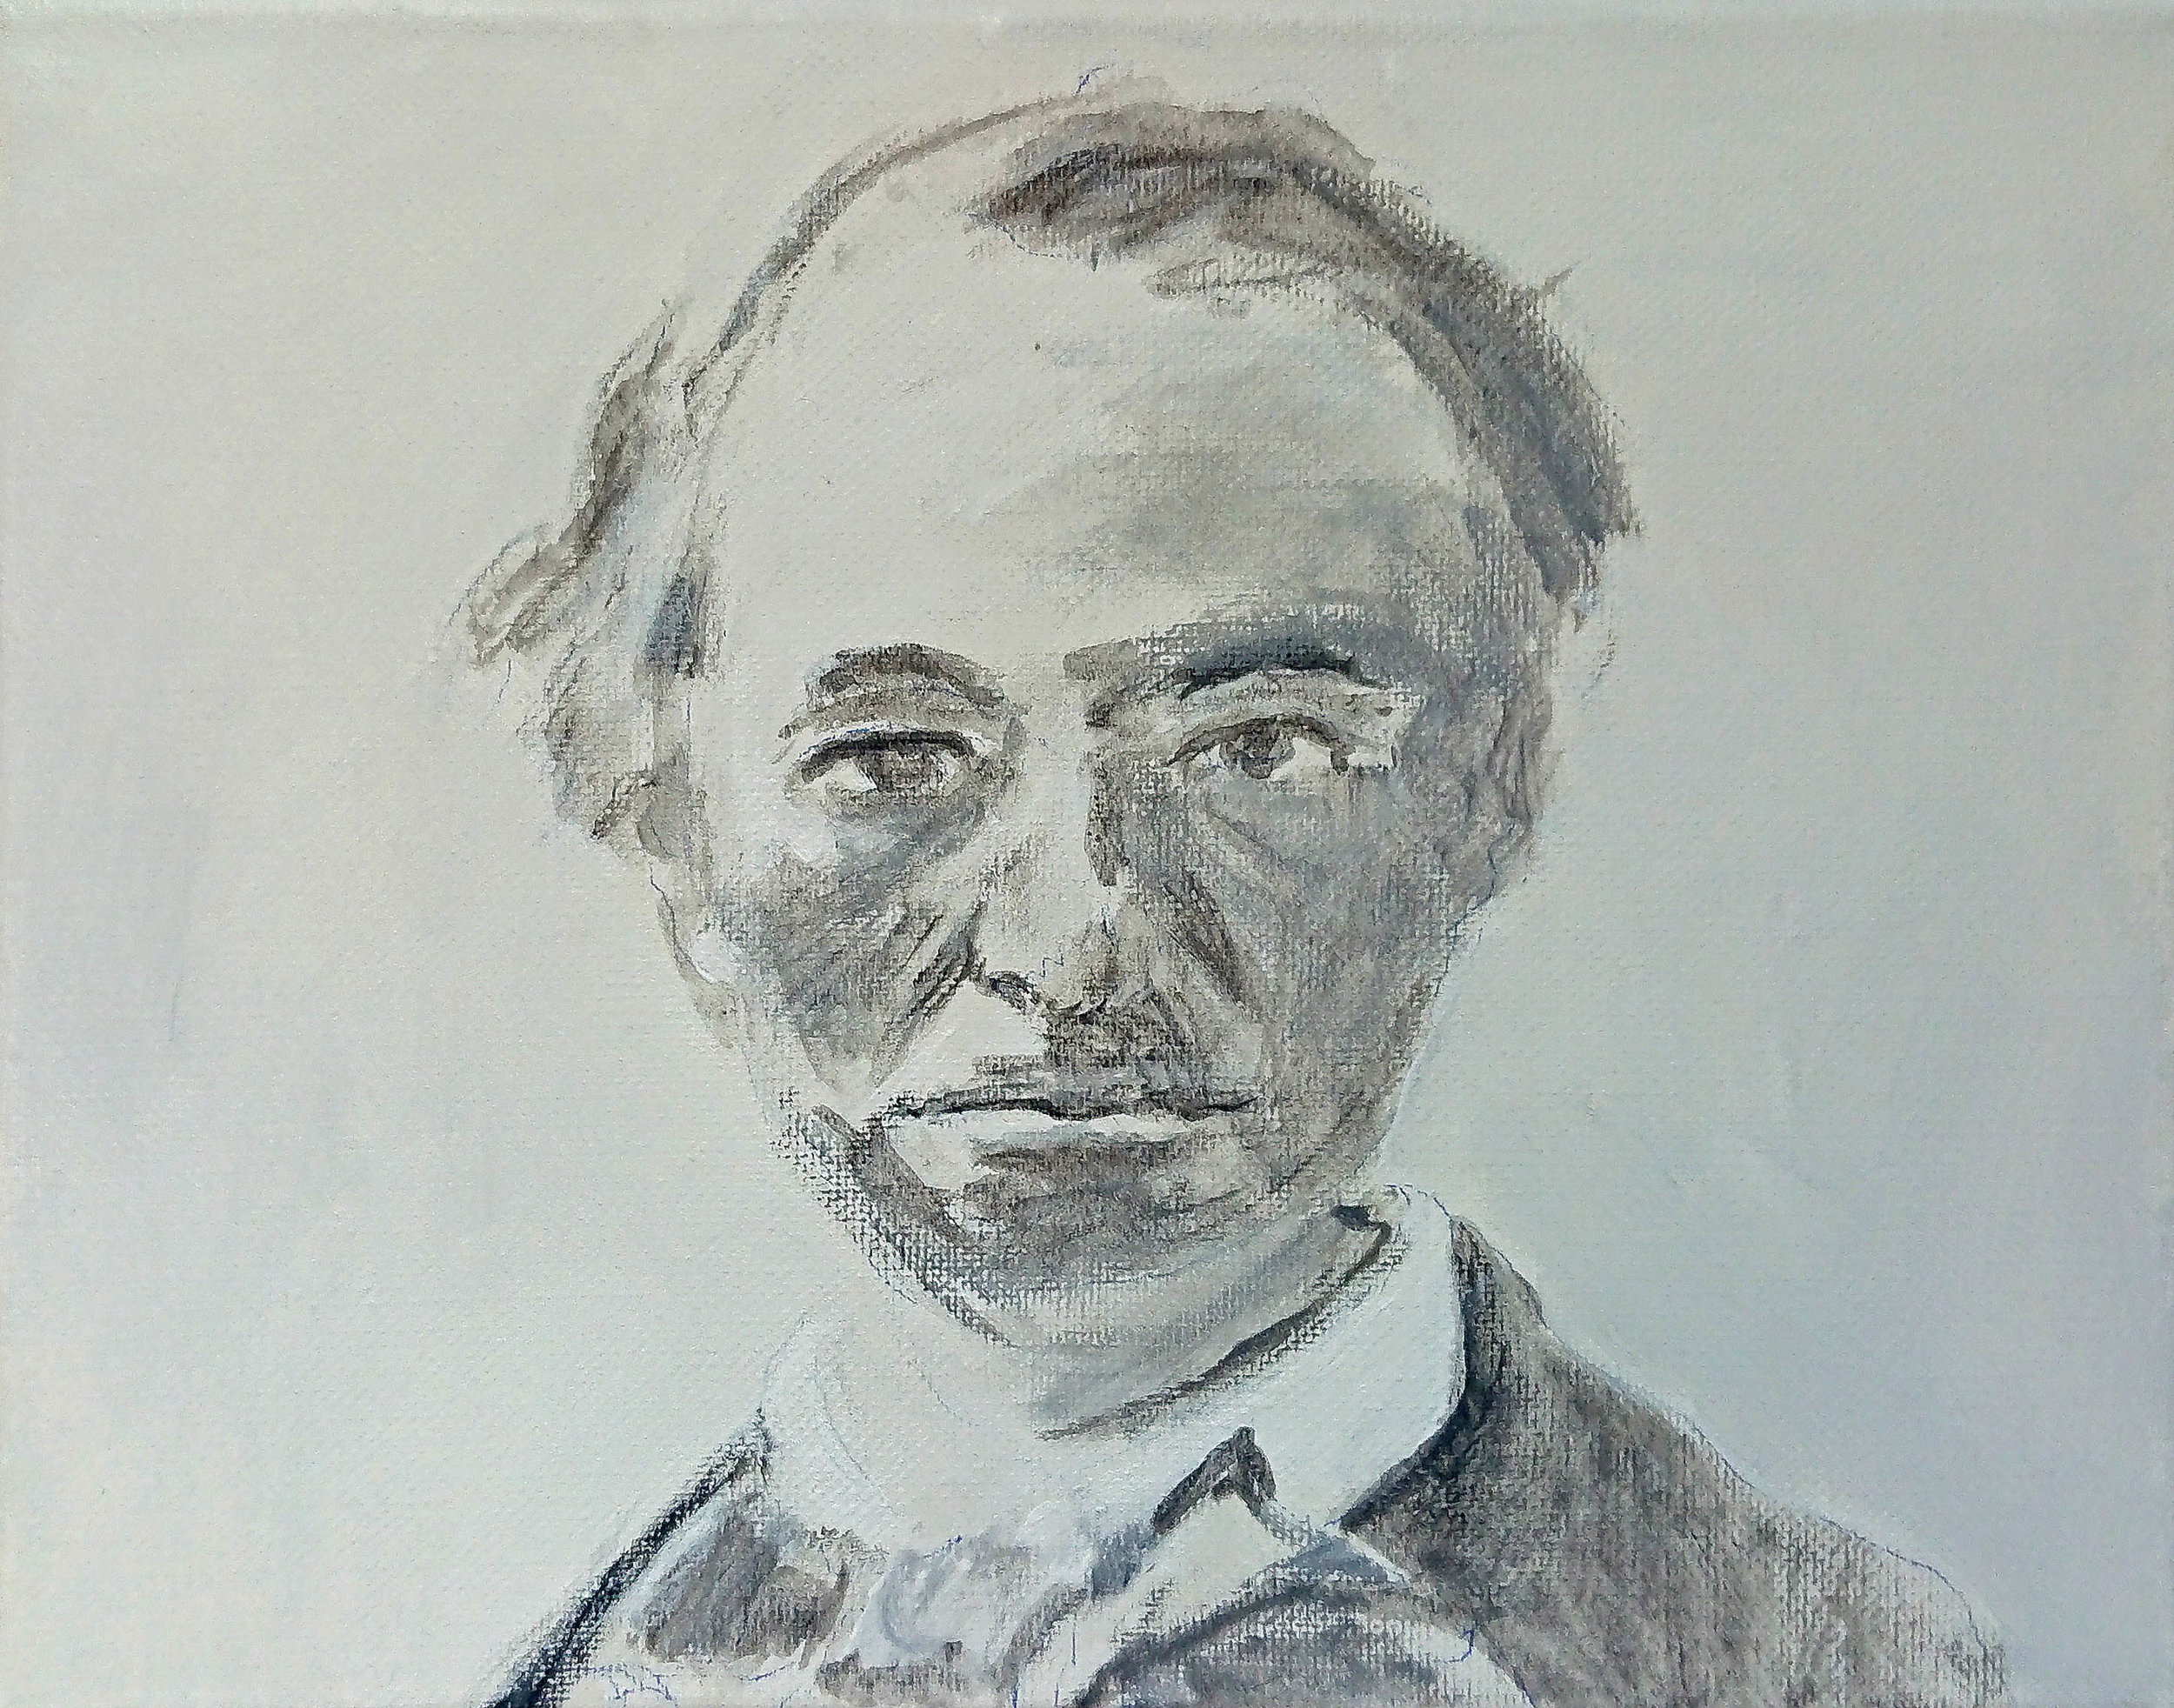 Baudelaire. 2019. Acrylic on canvas 20 x 25 cm. $250 SOLD